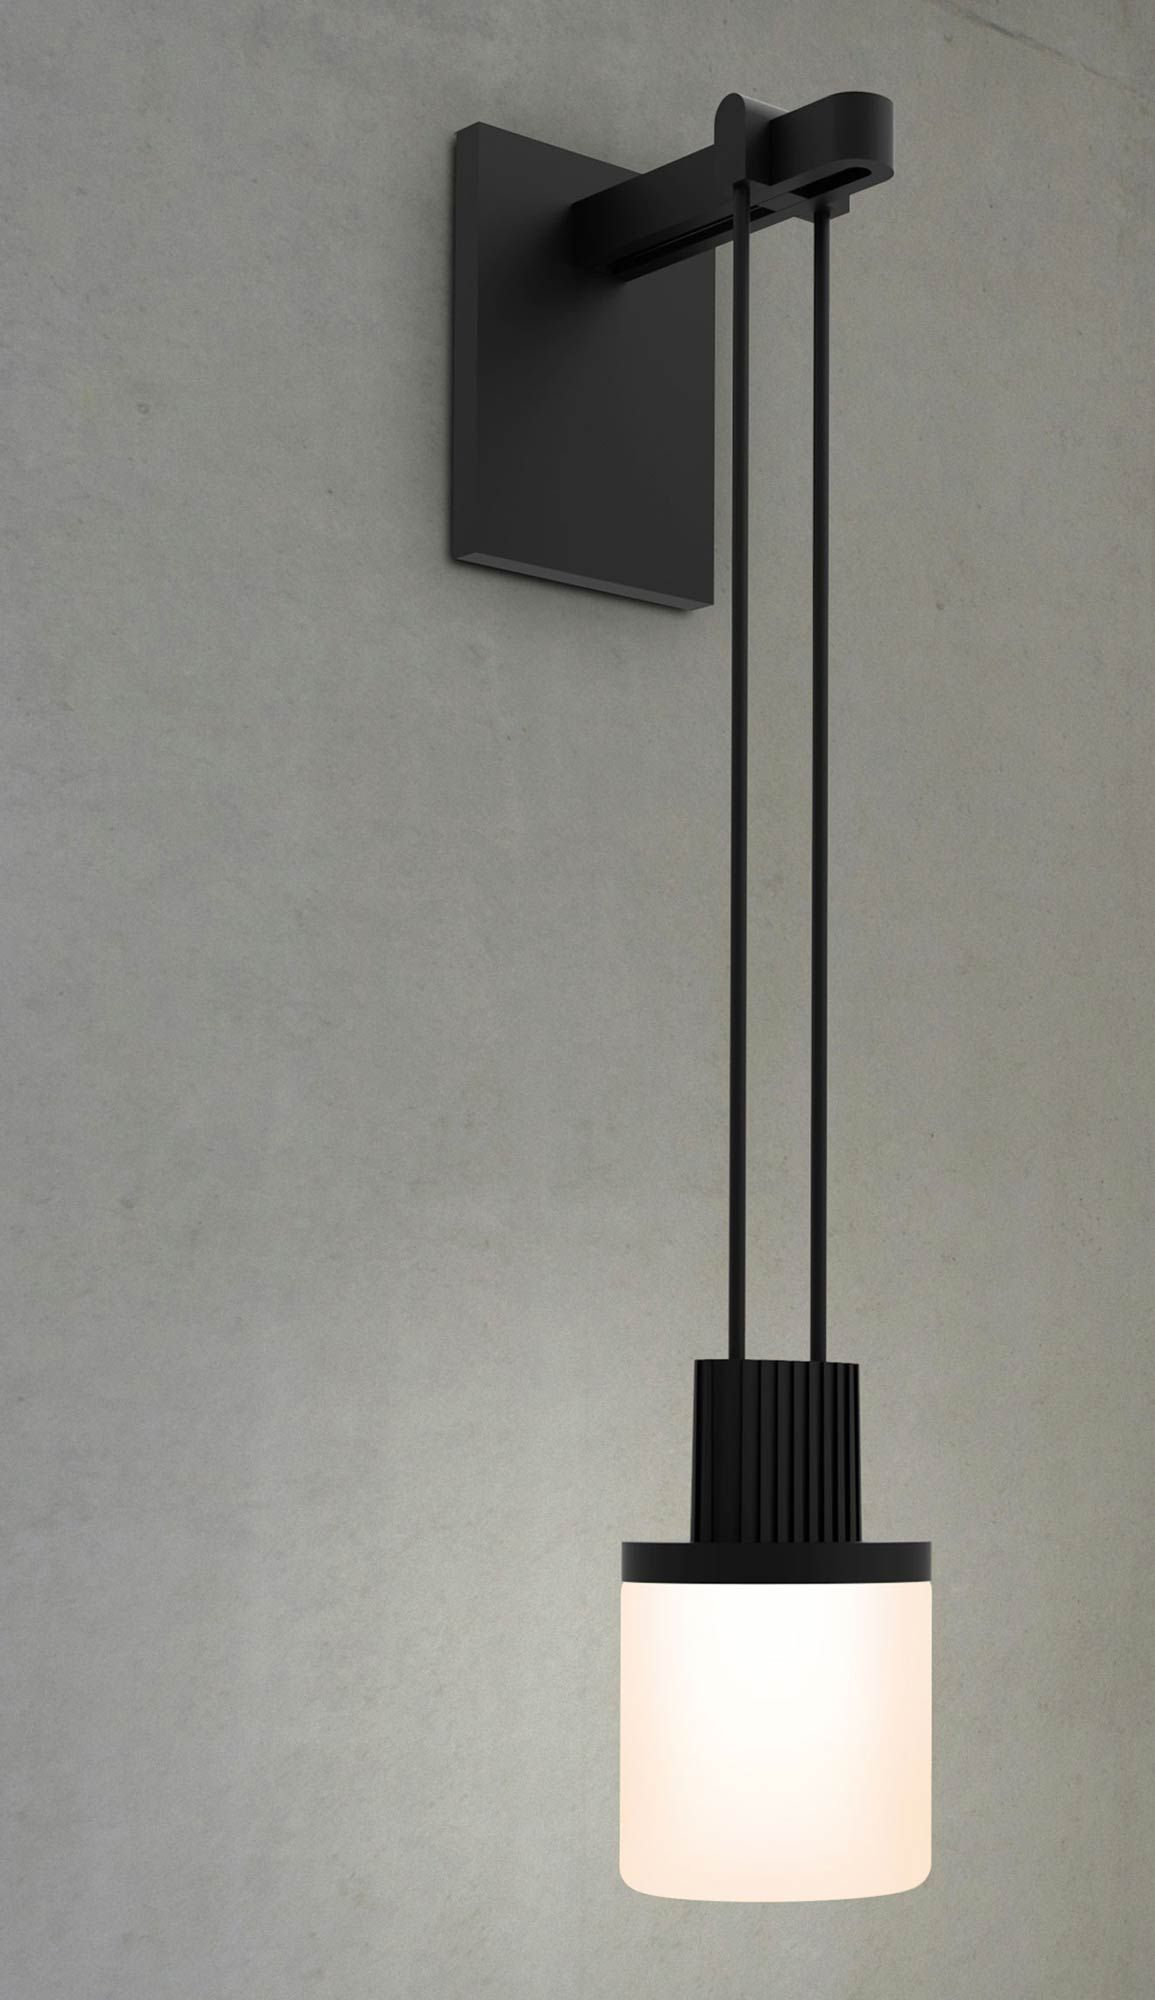 Suspenders Single Wall Light With Drum Luminaire By Sonneman A Way Of Light S1l01k Mfxxxx12 Rp06 Wall Lights Wall Lamp Lamp